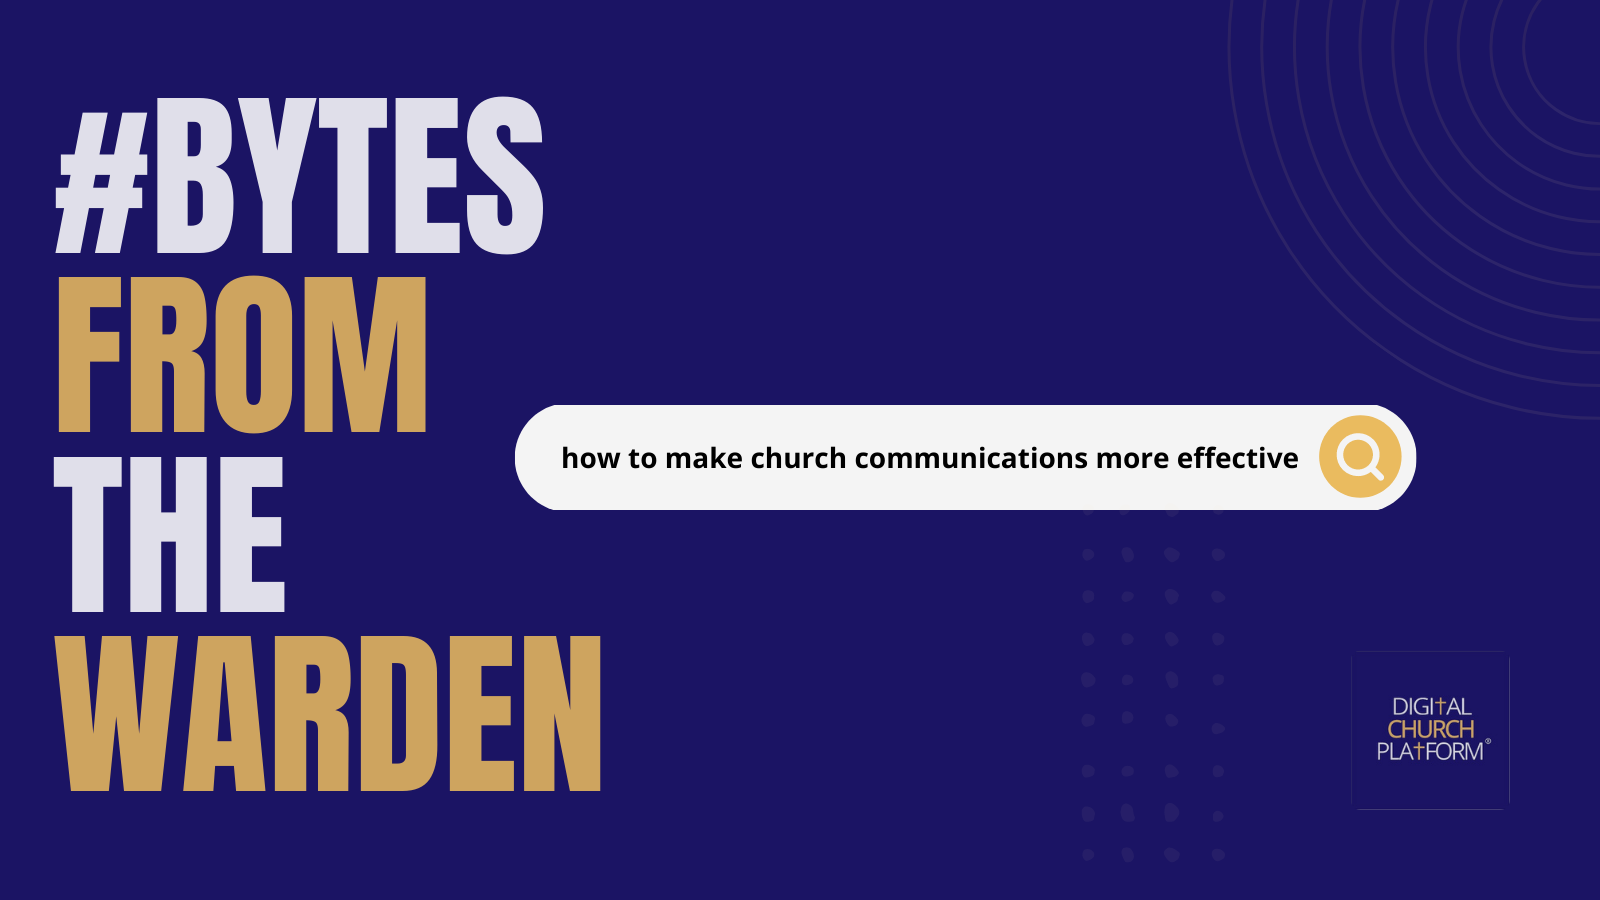 Making Church Communications More Effective